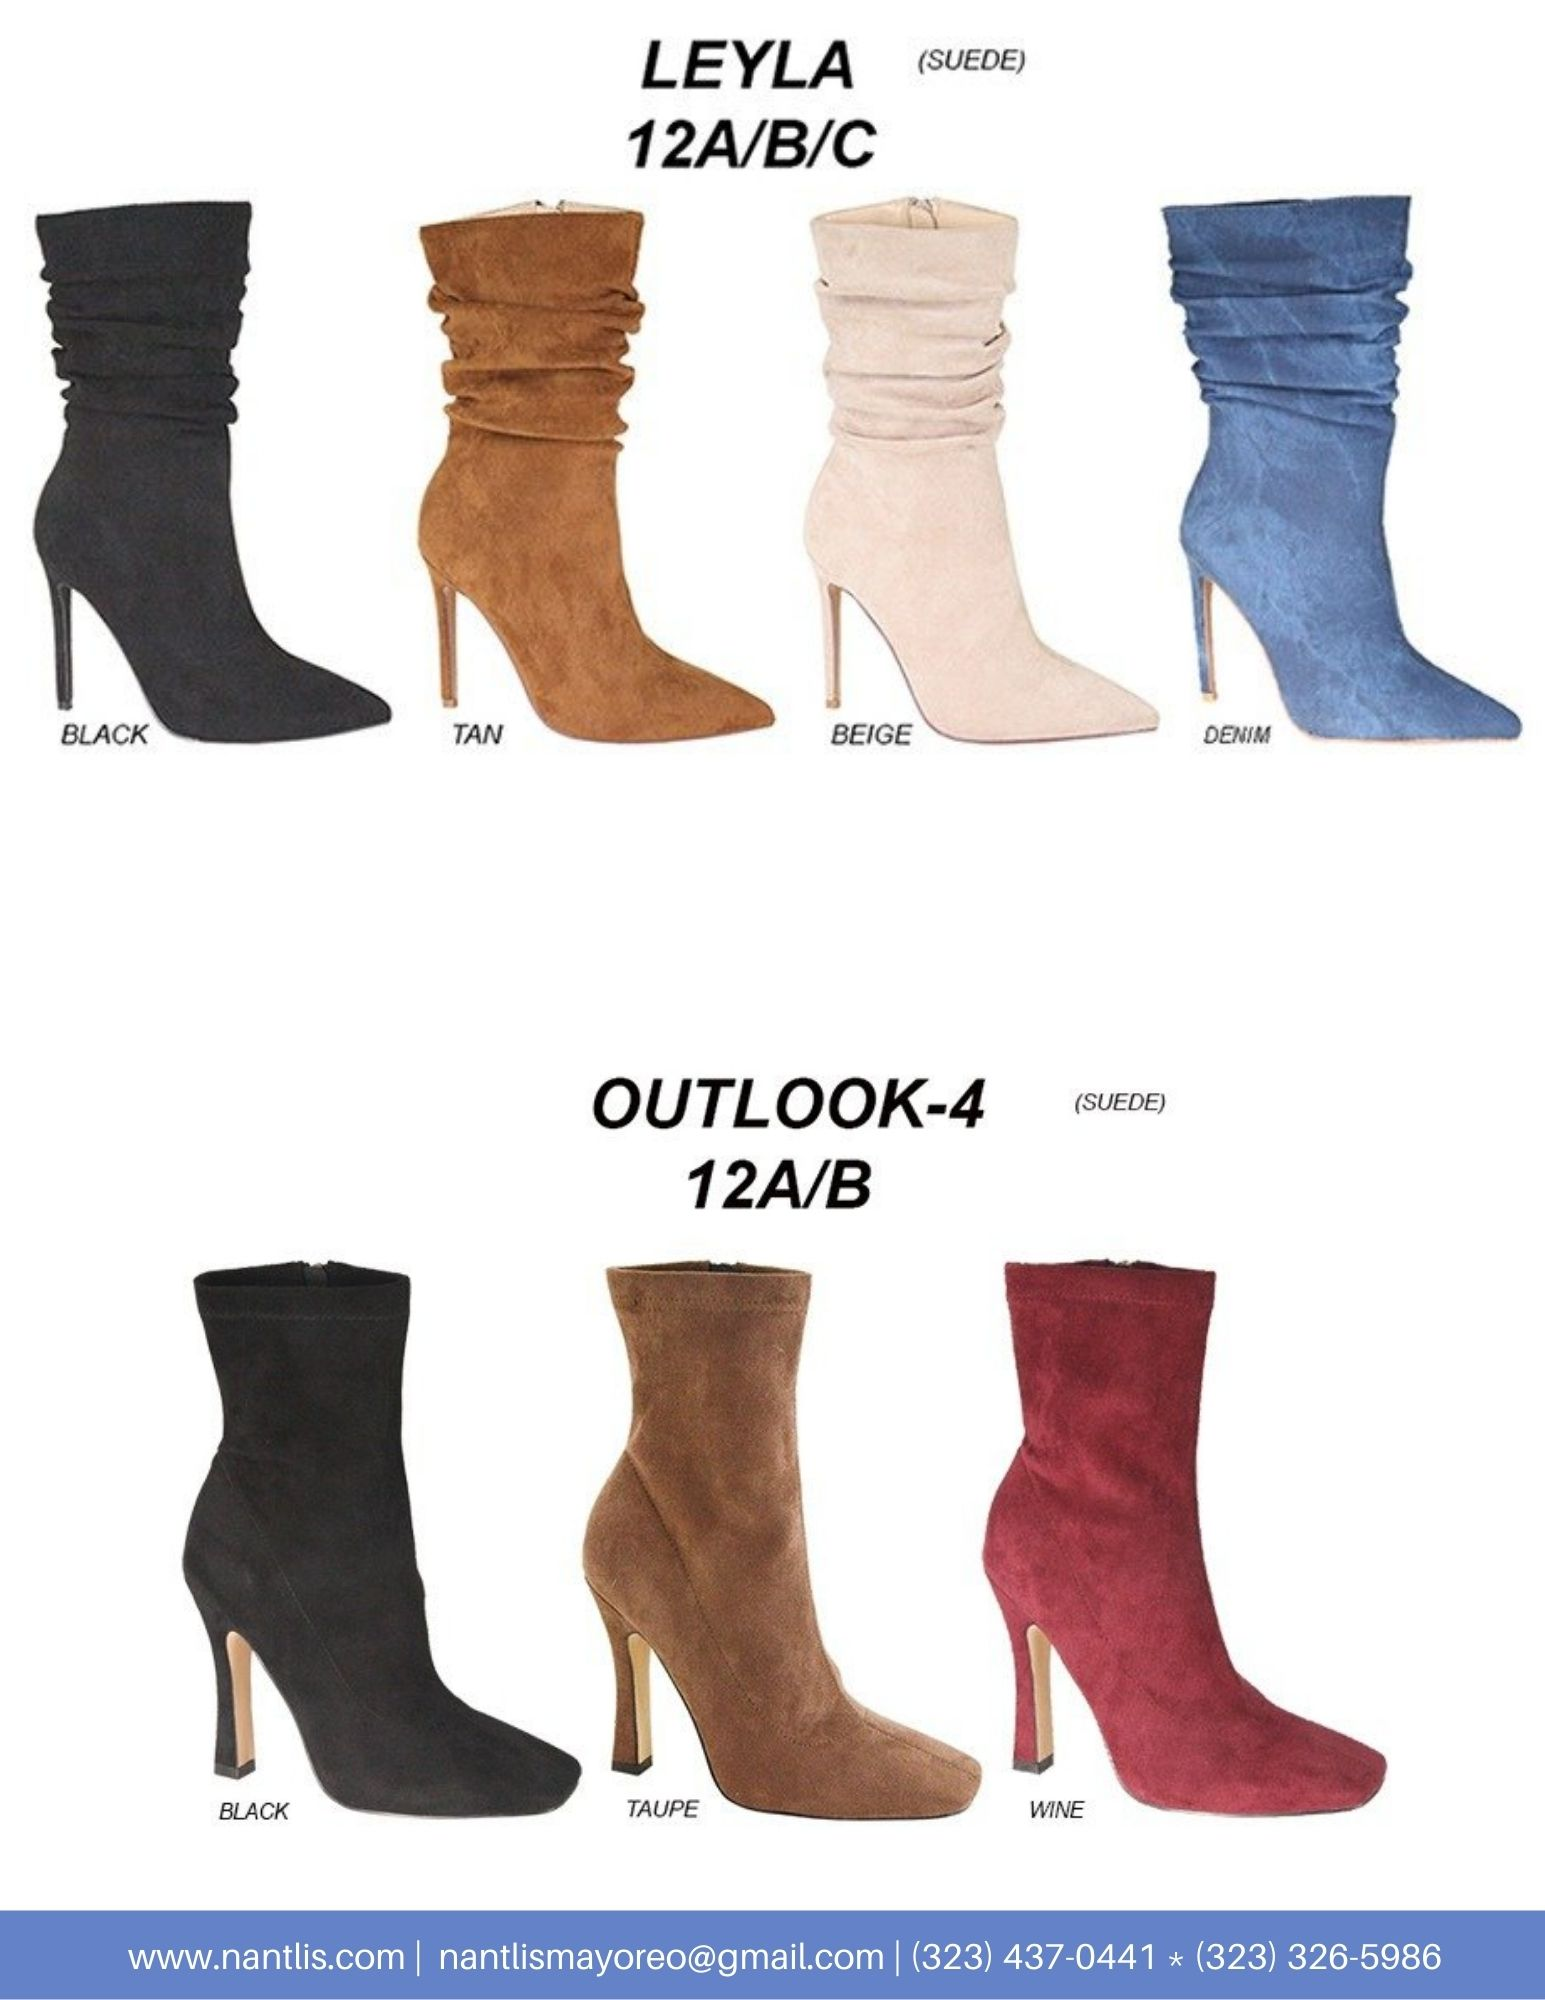 Nantlis Vol AN22 Botas Mujer mayoreo Catalogo Wholesale boots for women page 02